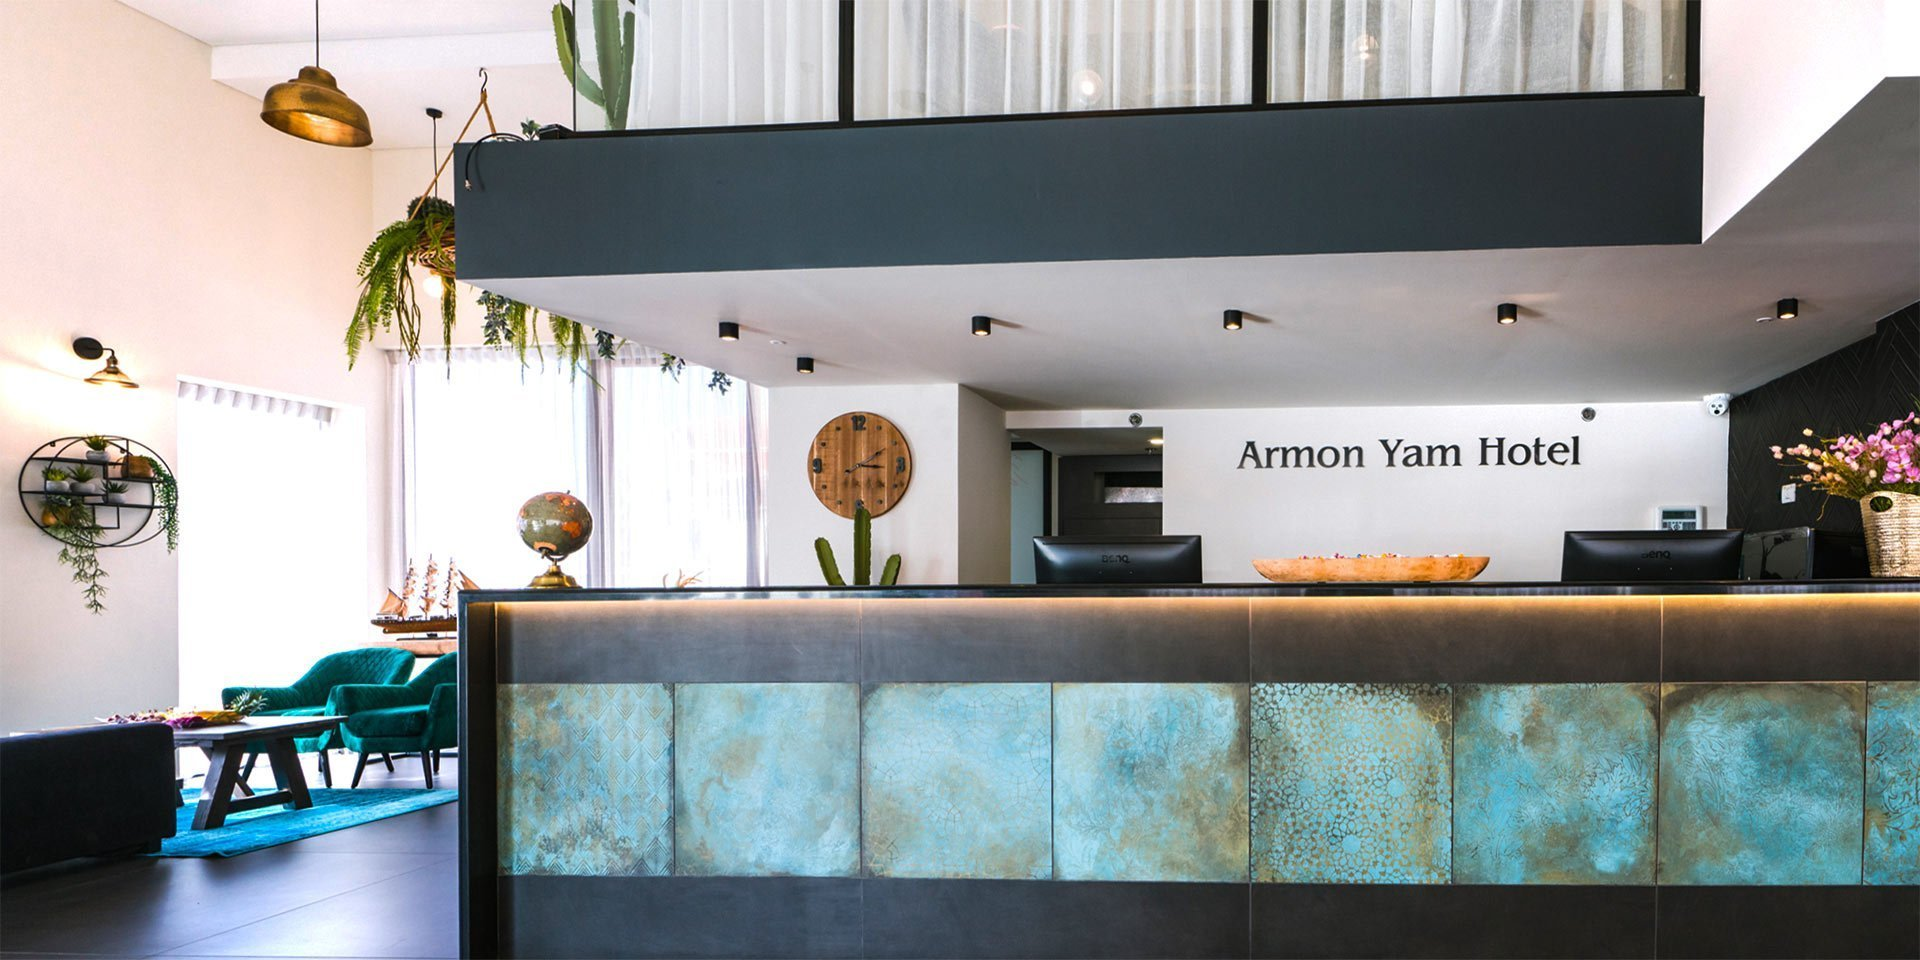 Accessibility Statement of Armon Yam Hotel